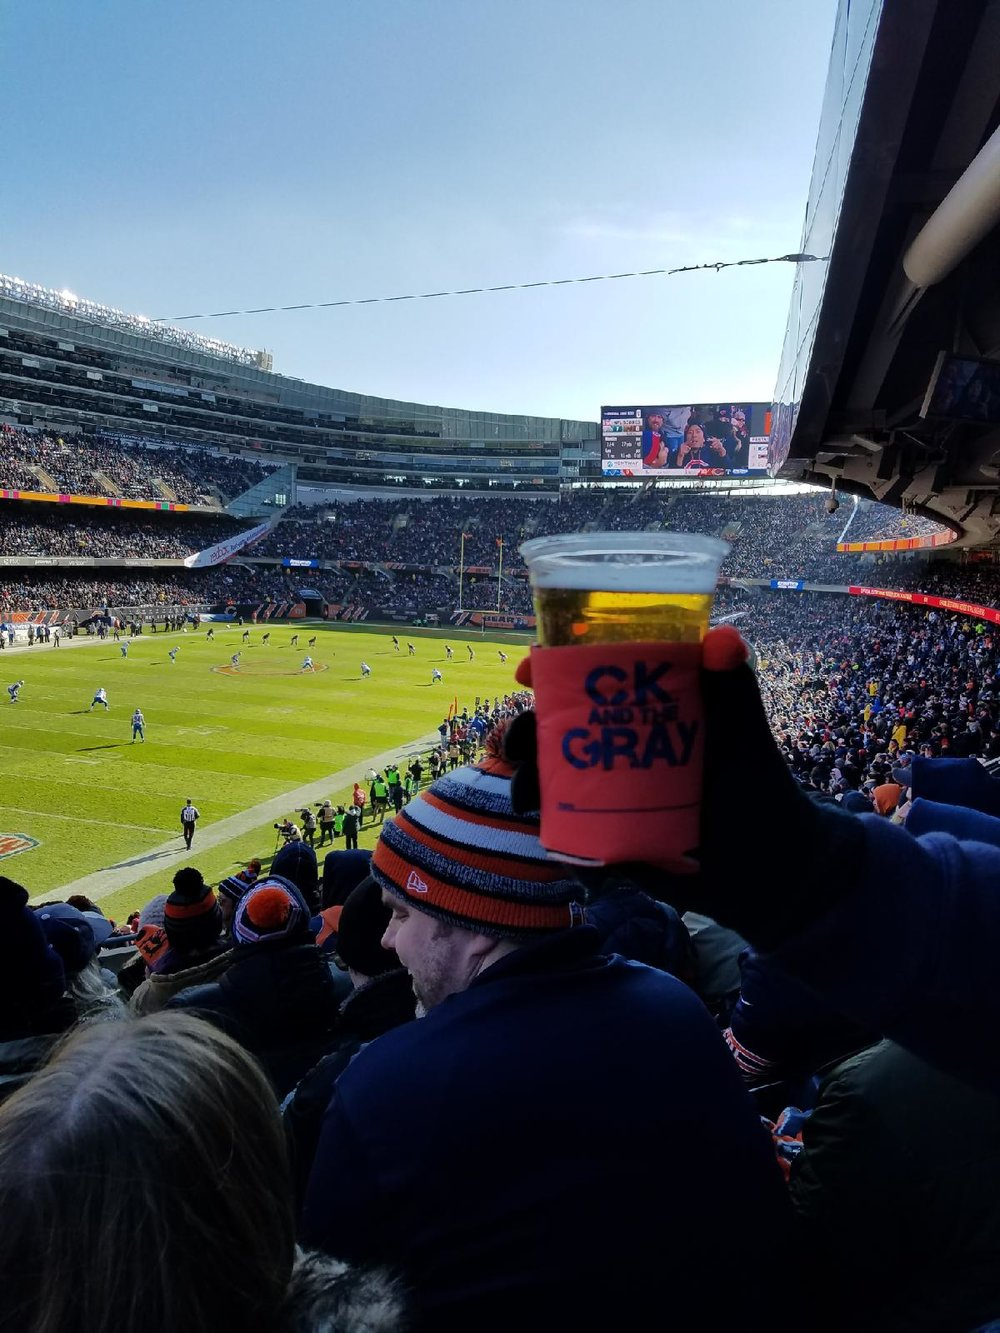 #ckkoozie at Soldier Field